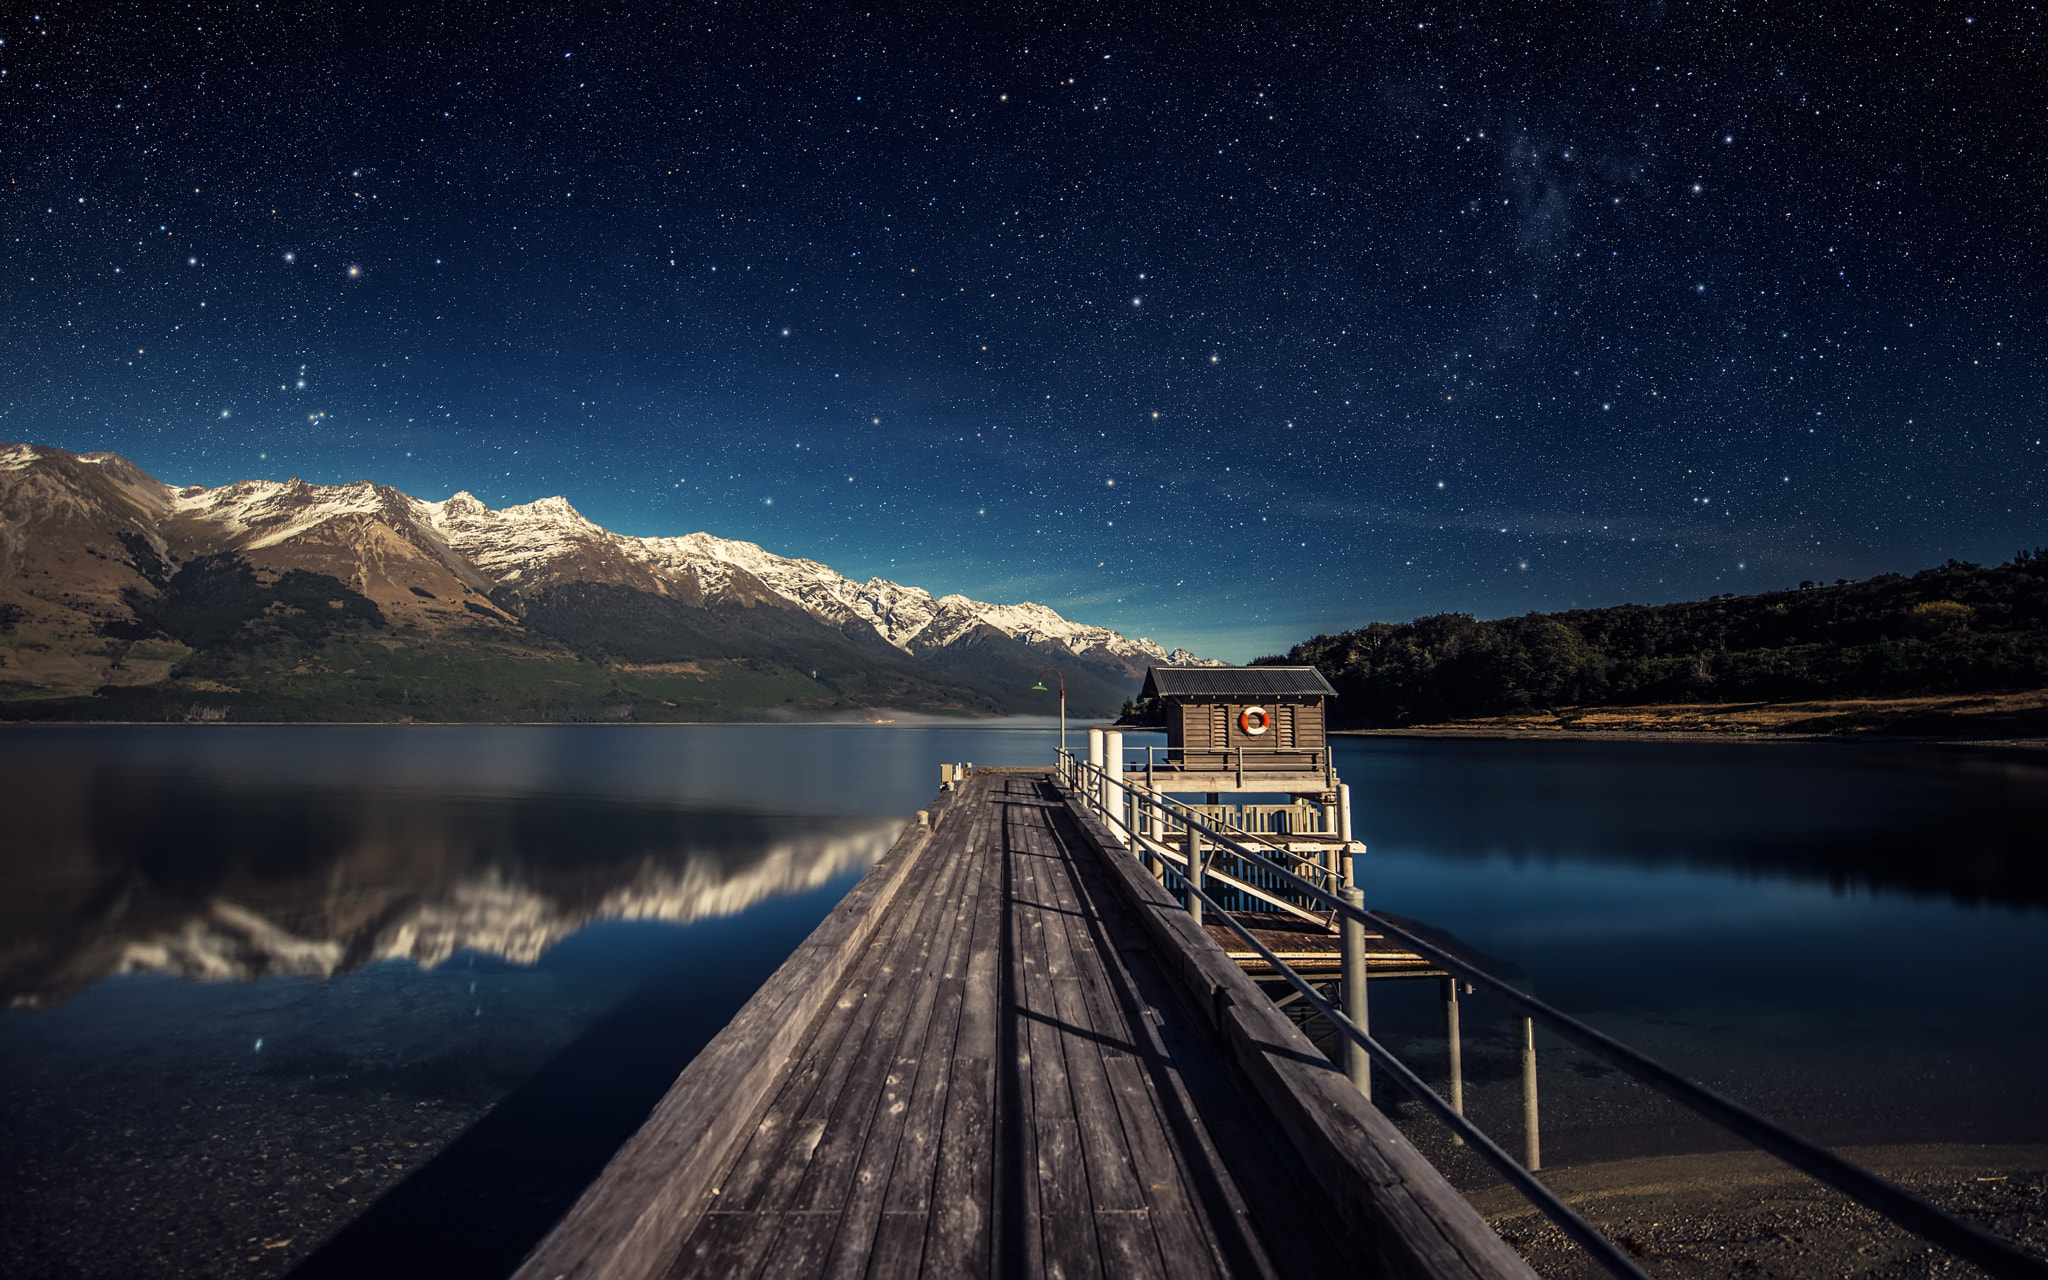 Photograph Moonlit Night by Dominic Kamp on 500px